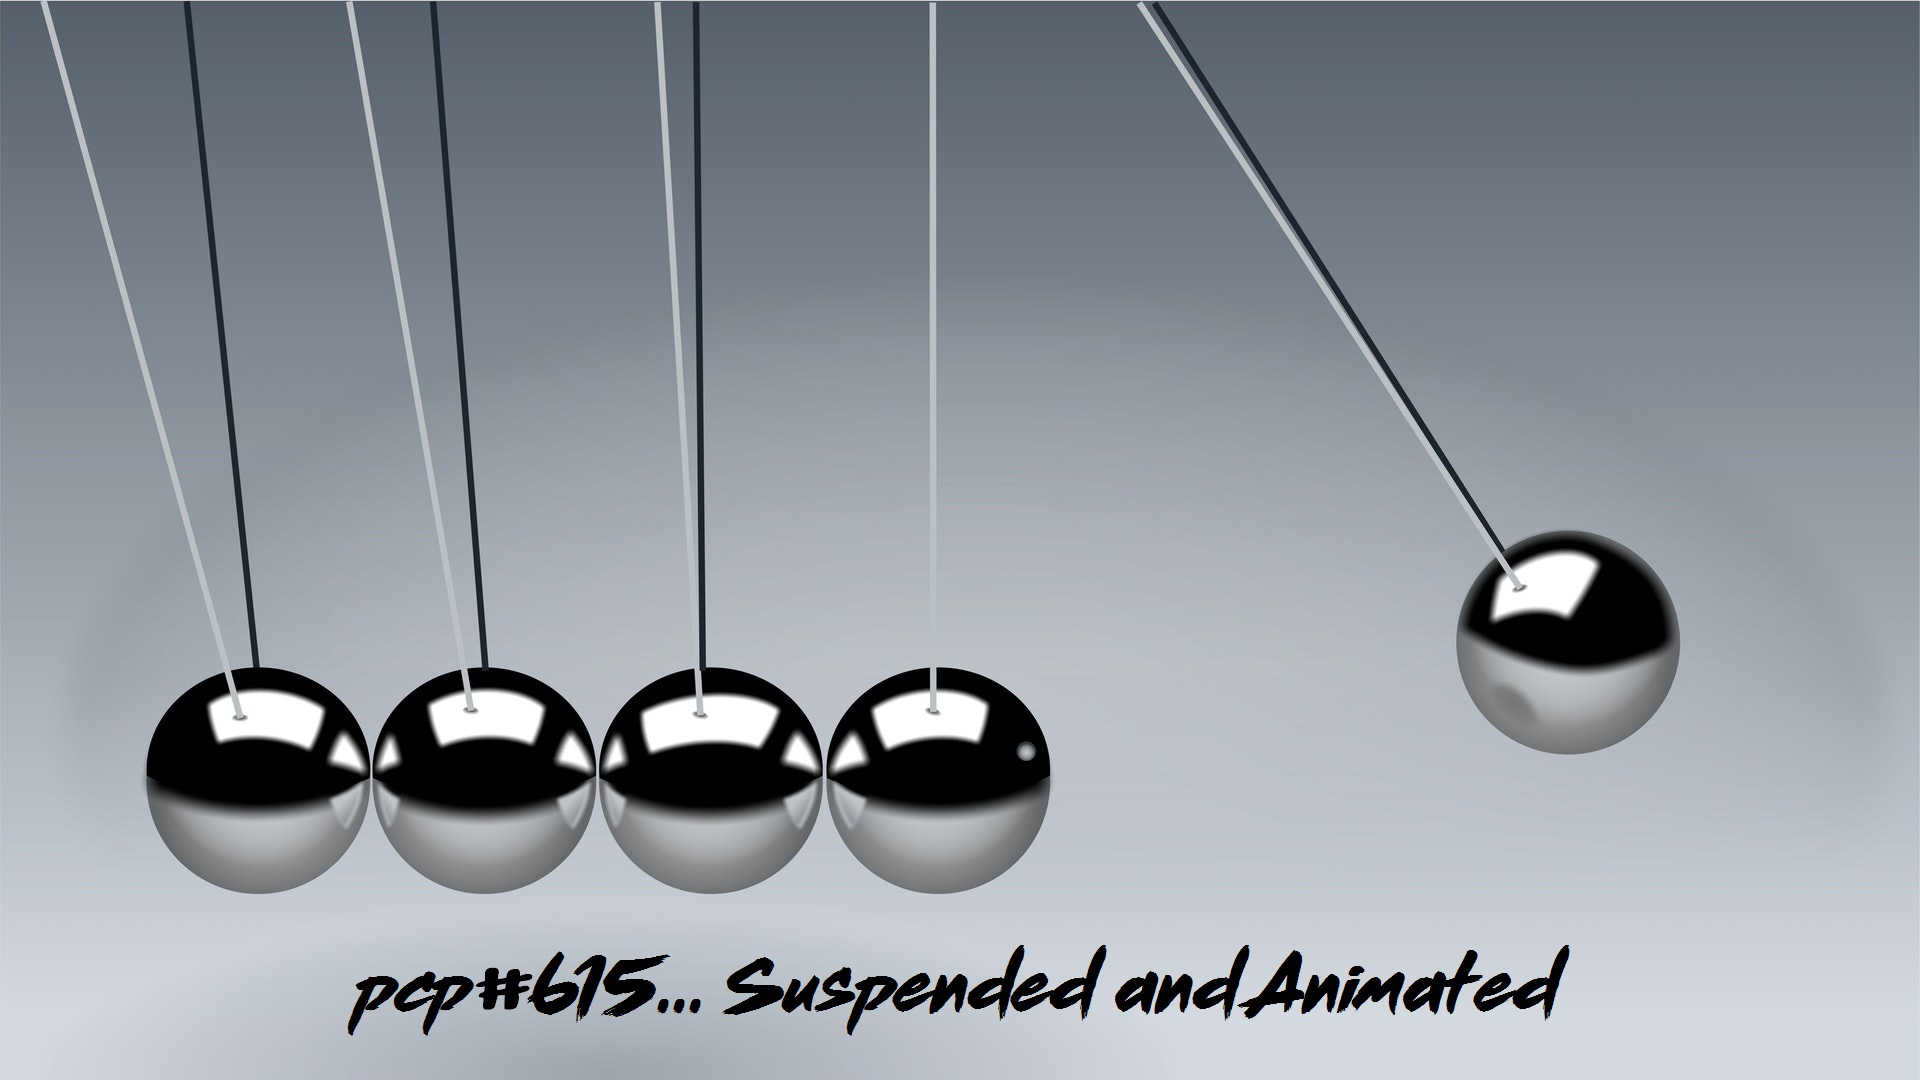 PCP#615... Suspended and Animated ....